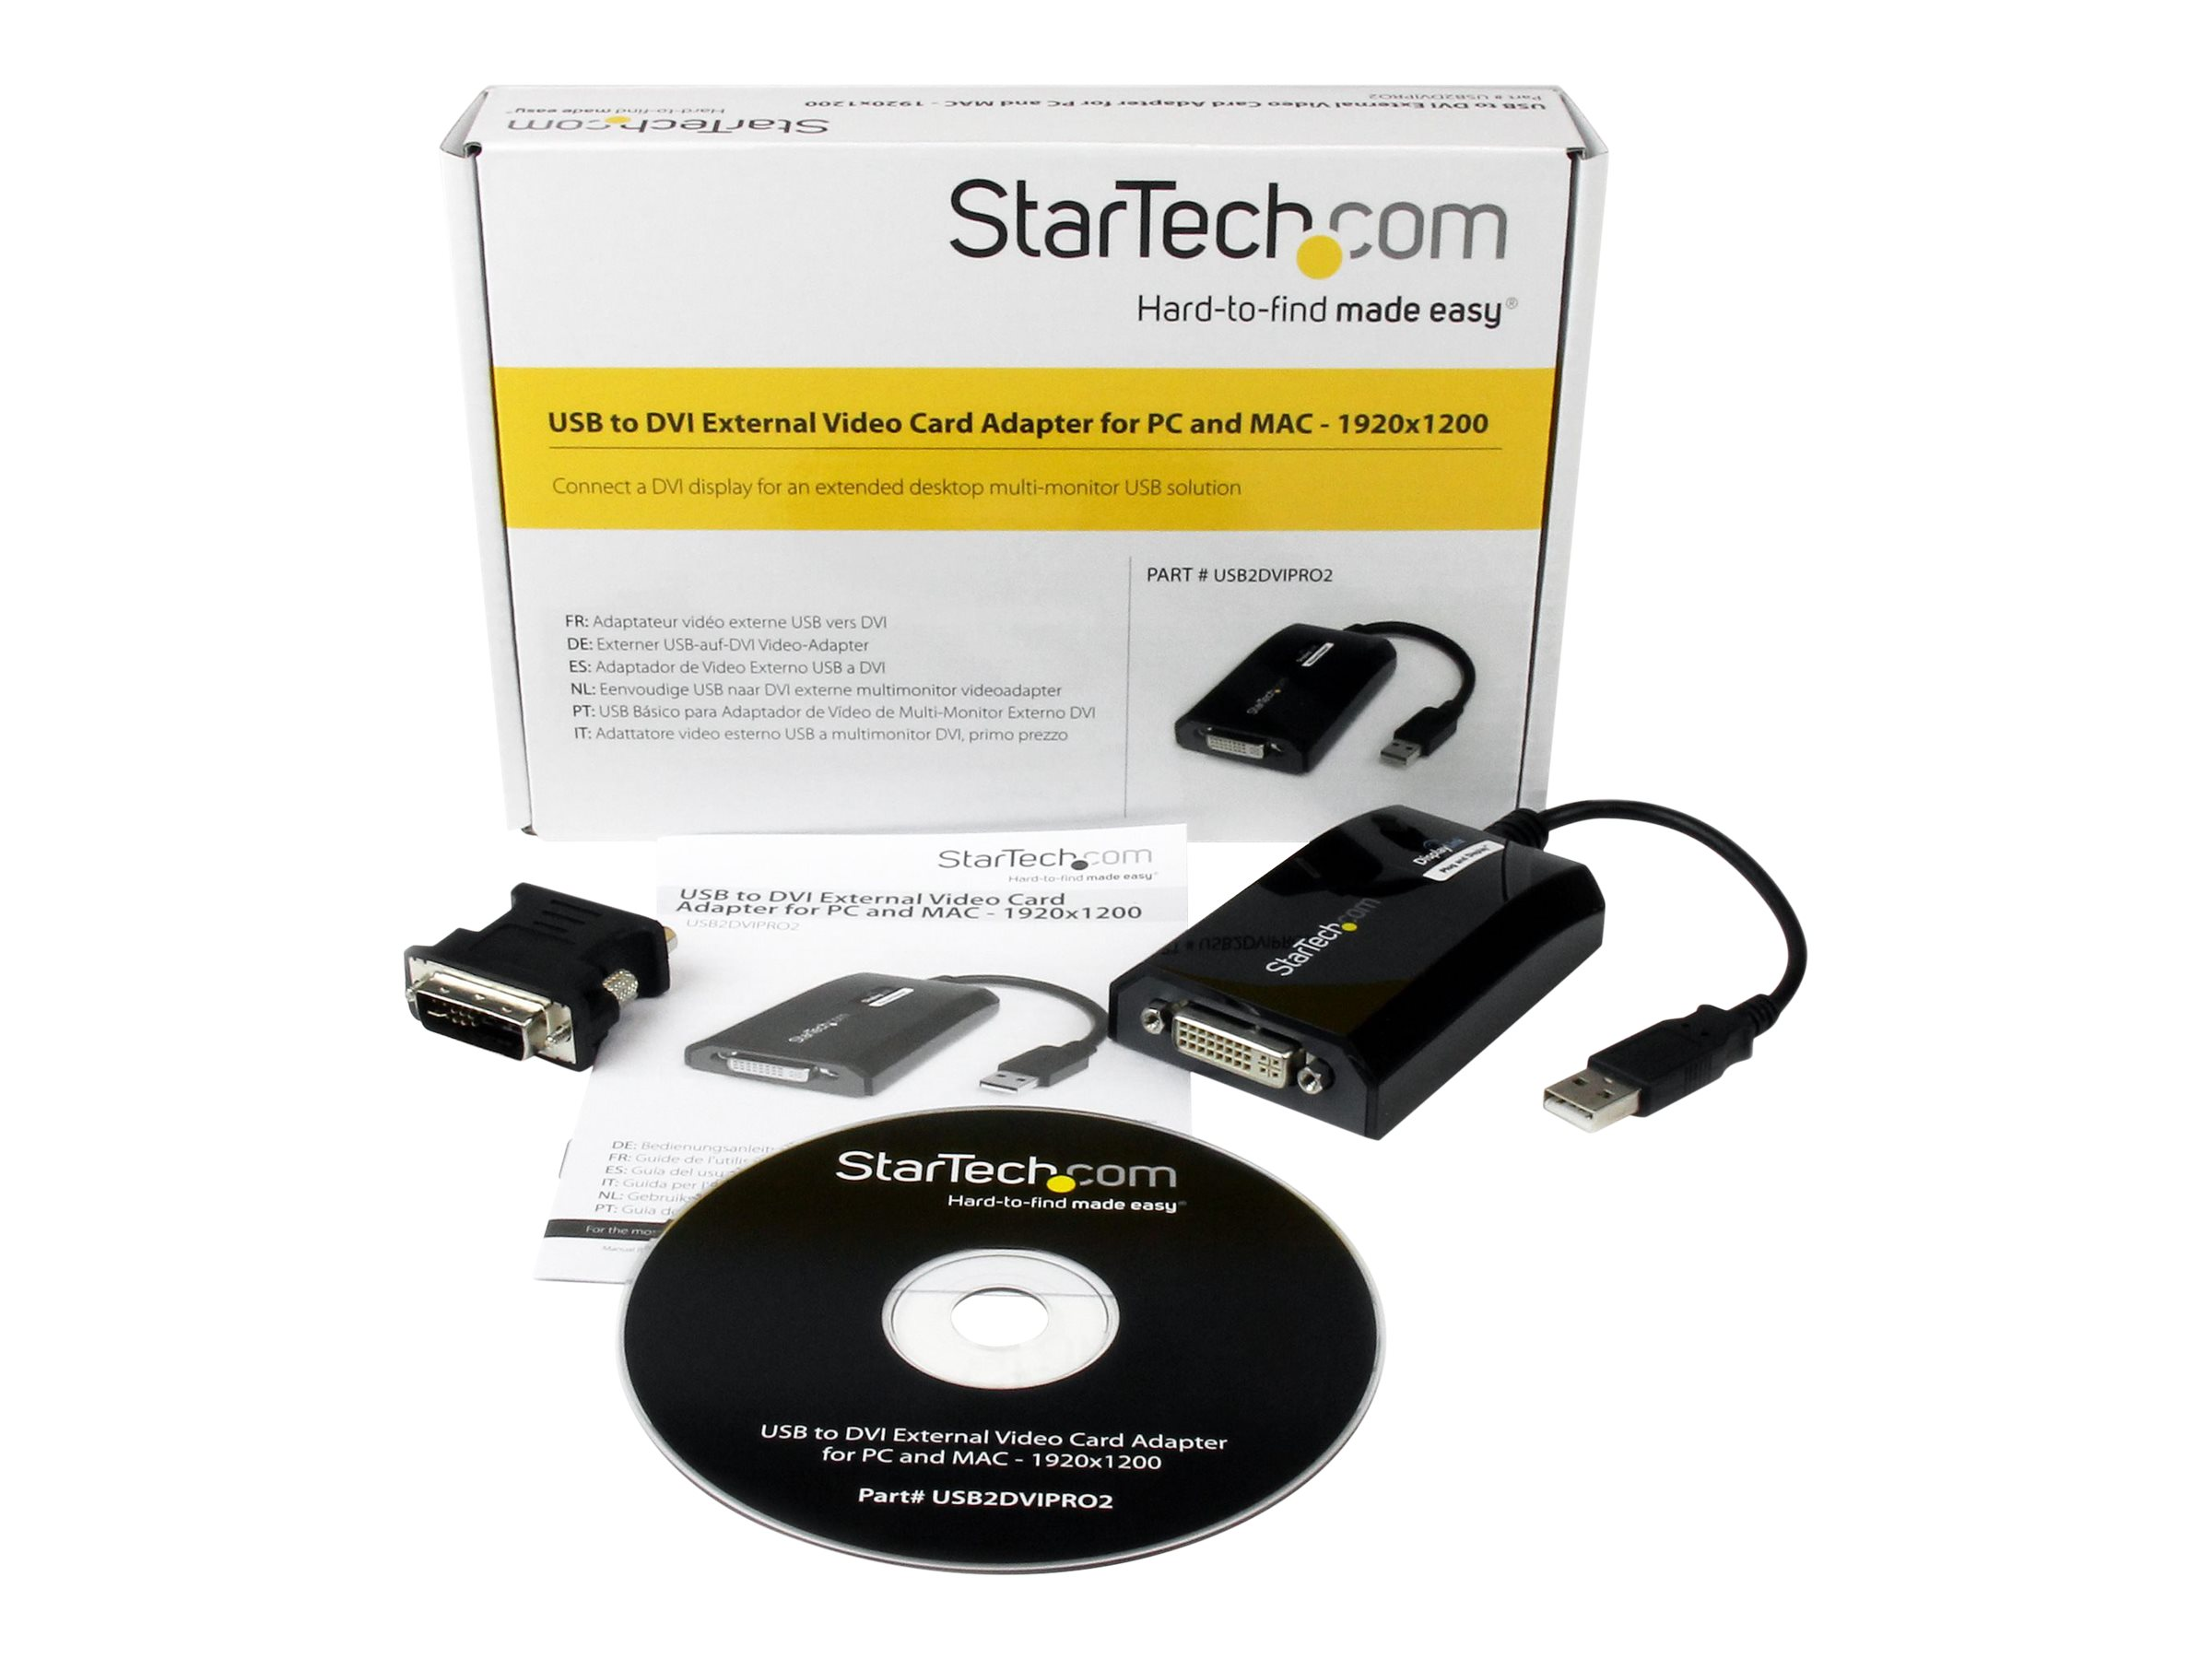 StarTech.com USB to DVI Adapter - 1920x1200 - External Video & Graphics Card - Dual Monitor Display Adapter Cable - Sup…